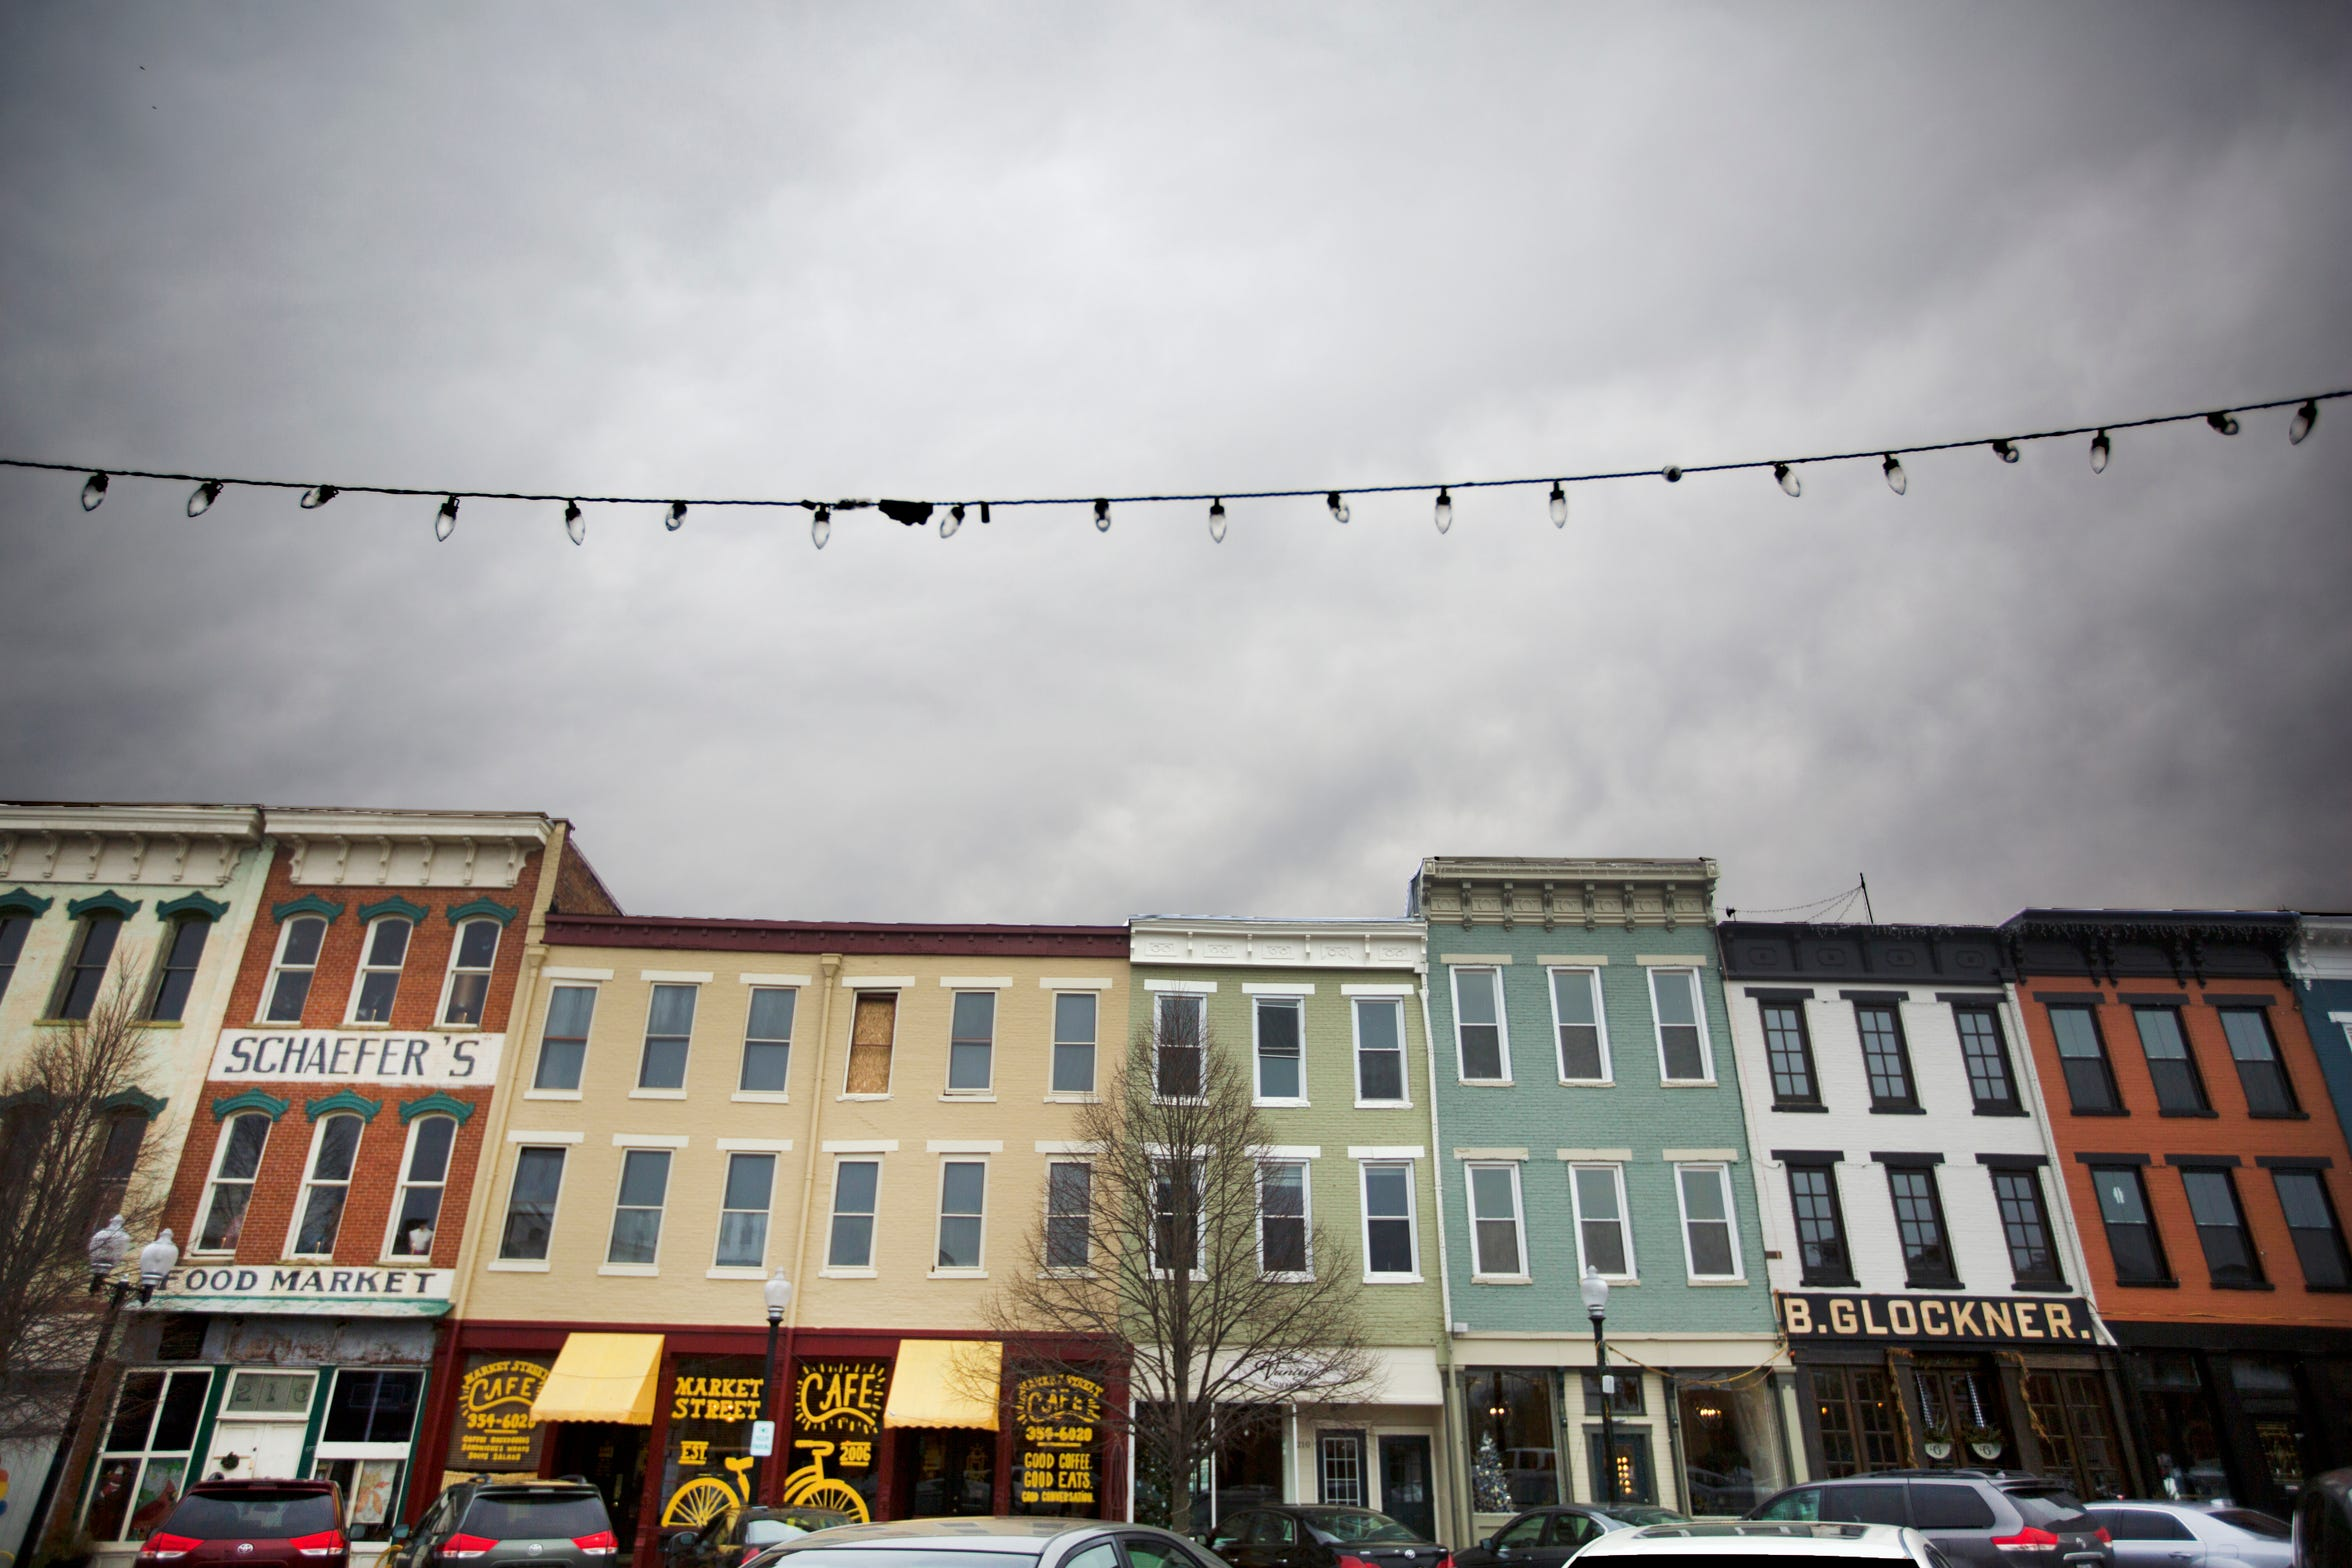 Market Square in downtown Portsmouth, Ohio is one of the bright spots in this southern Ohio rural community of just over 20,000 that sits along side the Ohio River and Scioto River.